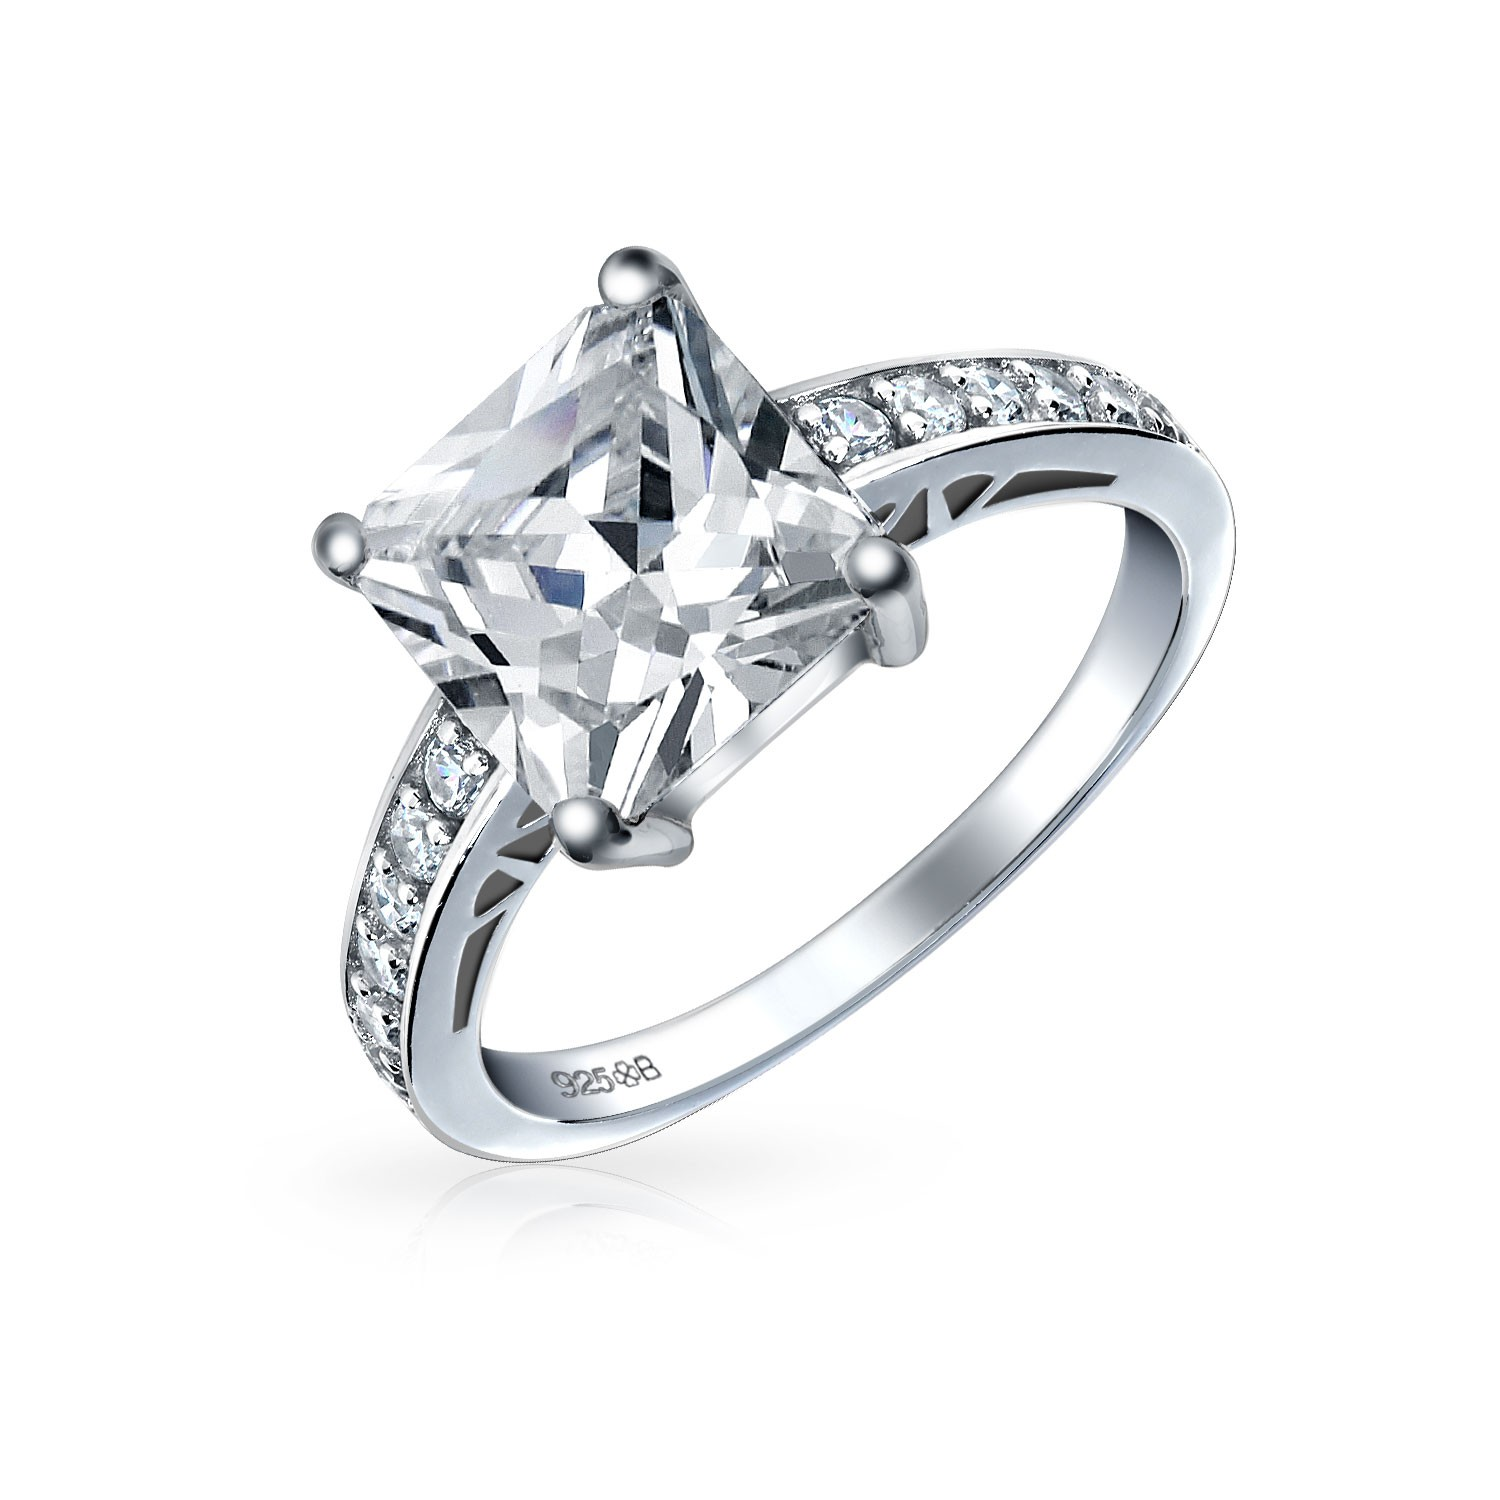 silver engagement rings bling jewelry sterling silver 2.9 ct princess cut cz engagement ring fgvztti